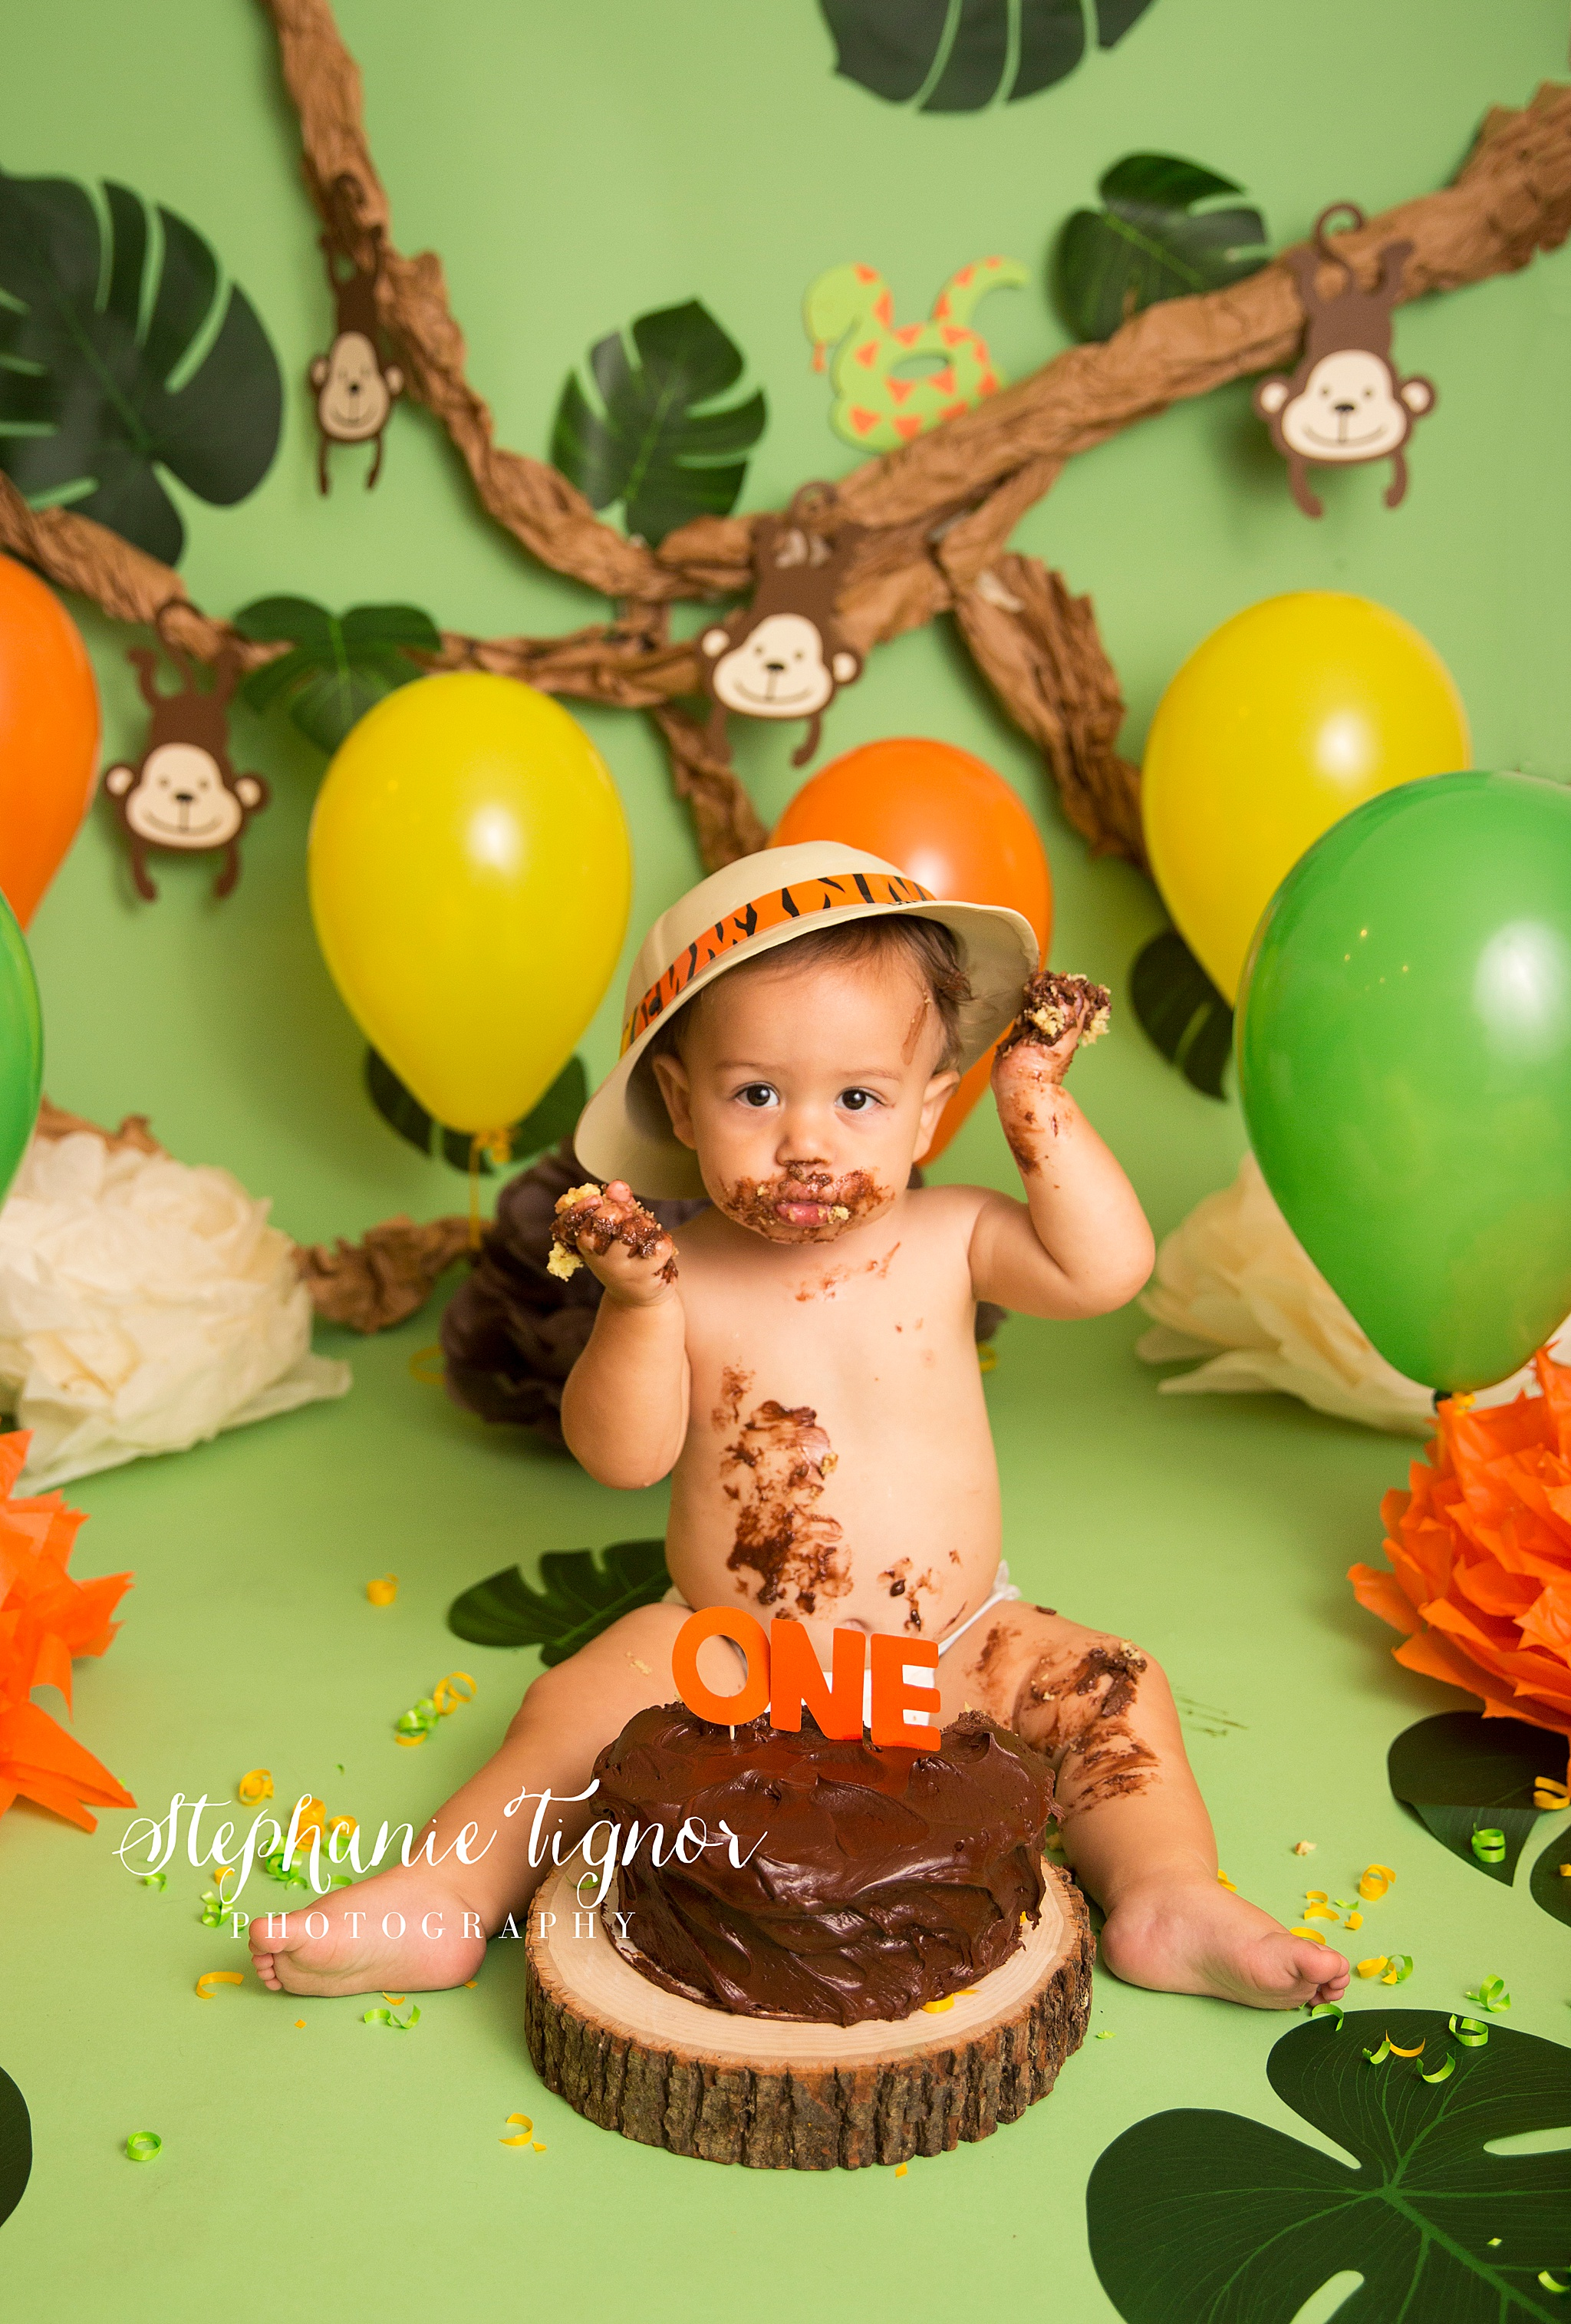 Stephanie Tignor Photography | Fredericksburg VA Cake Smash Photographer | Warrenton VA Cake Smash Photographer | Stafford VA Cake Smash Photographer | Cake Smash Photographer, Safari themed cake smash, Safari cake smash, jungle cake smash, bright green cake smash, ONE birthday, first birthday